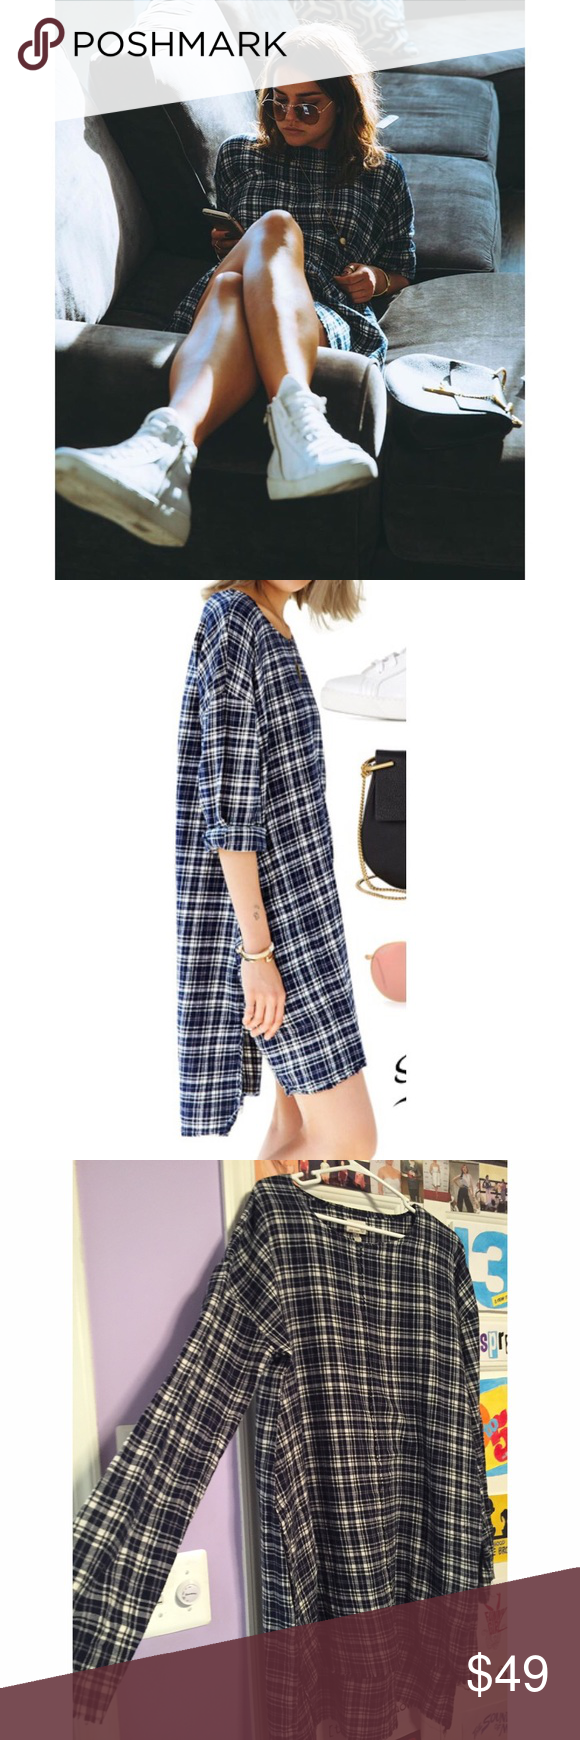 Maia Mitchell Urban Renewal Plaid Flannel Dress As seen on Maia Mitchell. New with tags! Feel free to make an offer! :) Plaid dress made from soft remnant flannel by the reconstruction experts at Urban Renewal. Cut in a fitted pullover. High low. Urban Outfitters Dresses High Low